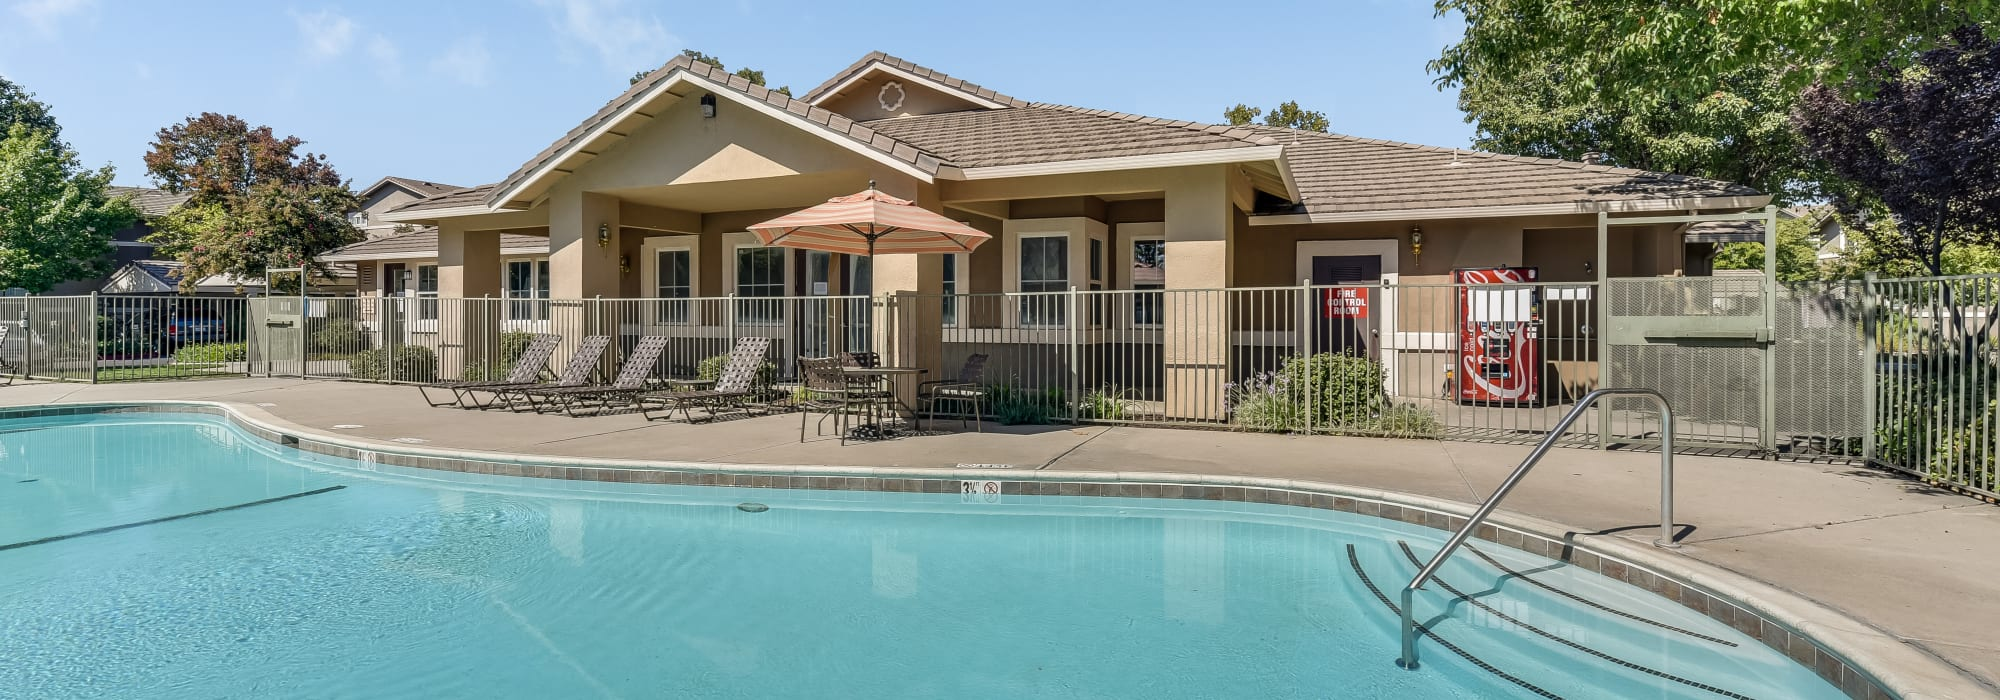 Privacy policy of Natomas Park Apartments in Sacramento, California